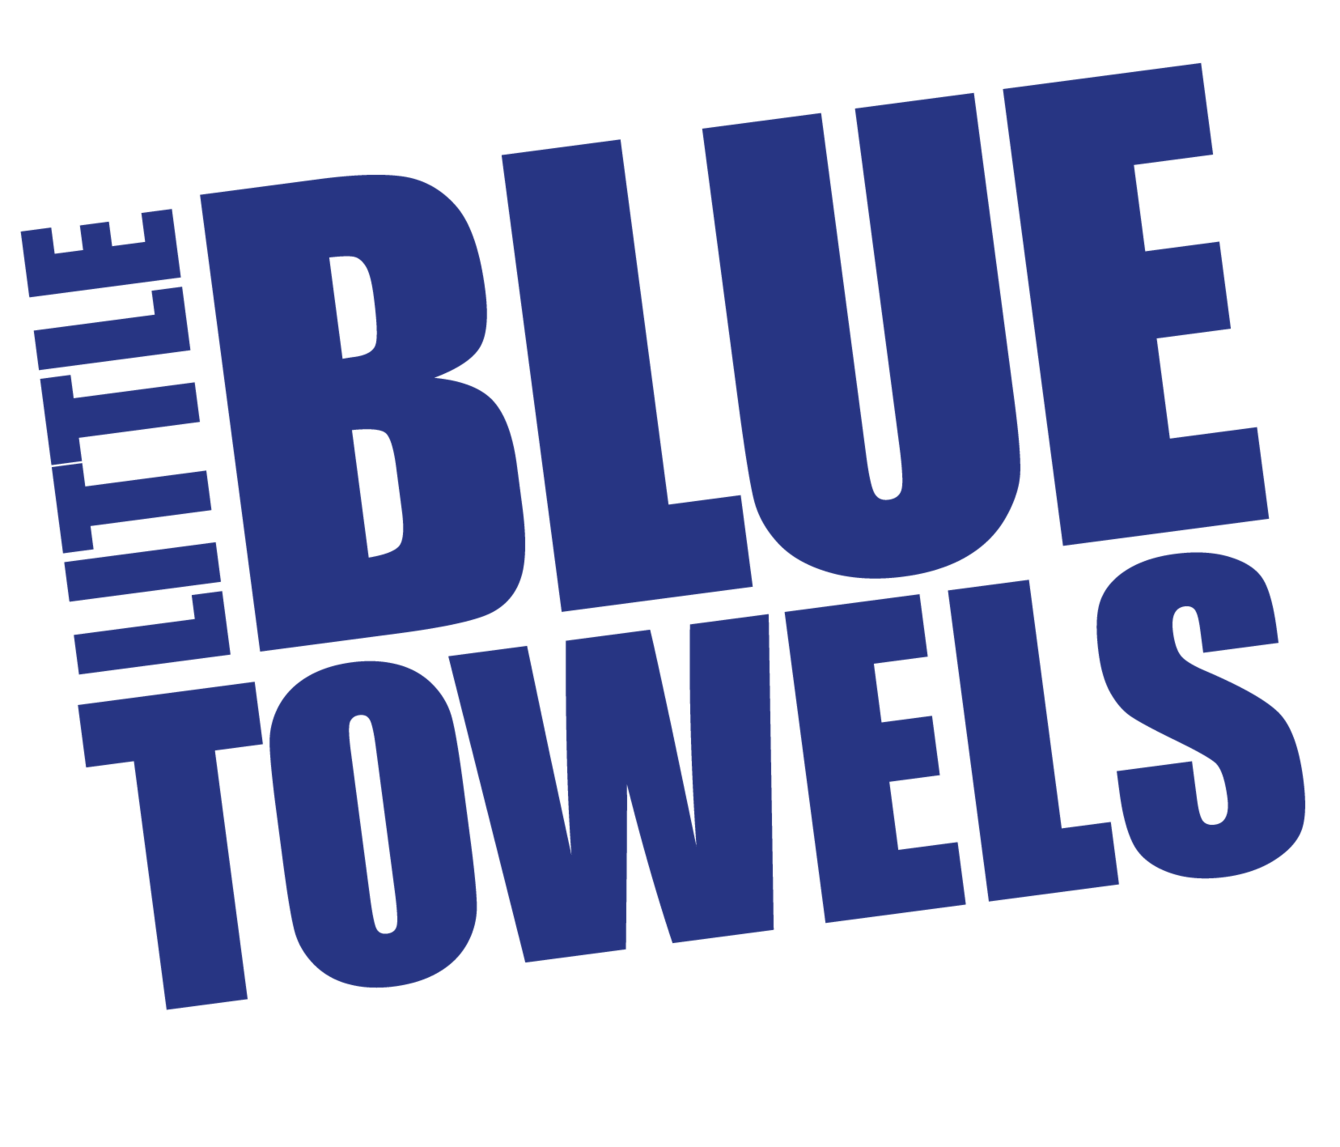 Little Blue Towels